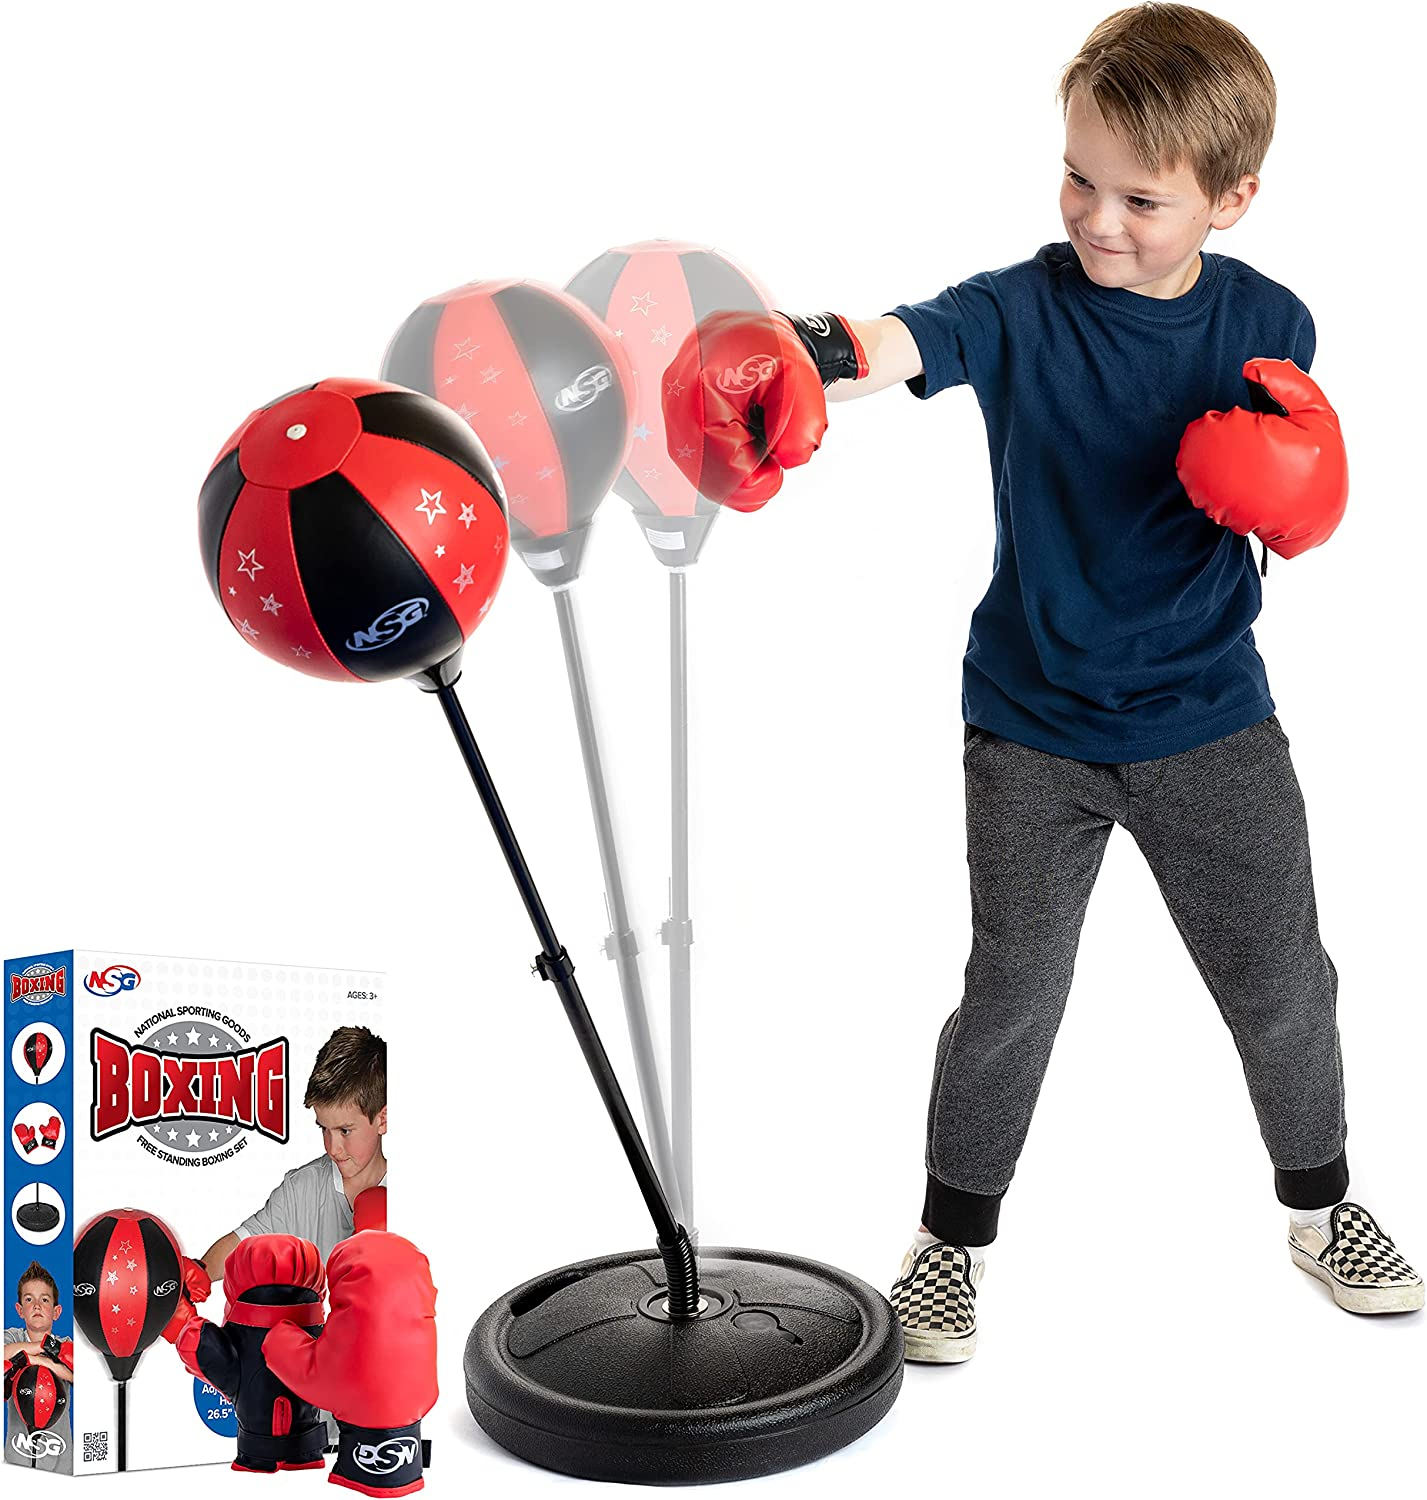 Details about  /Punching Ball Bag Boxing Punch Exercise Sports Set With Gloves Adjustable Height